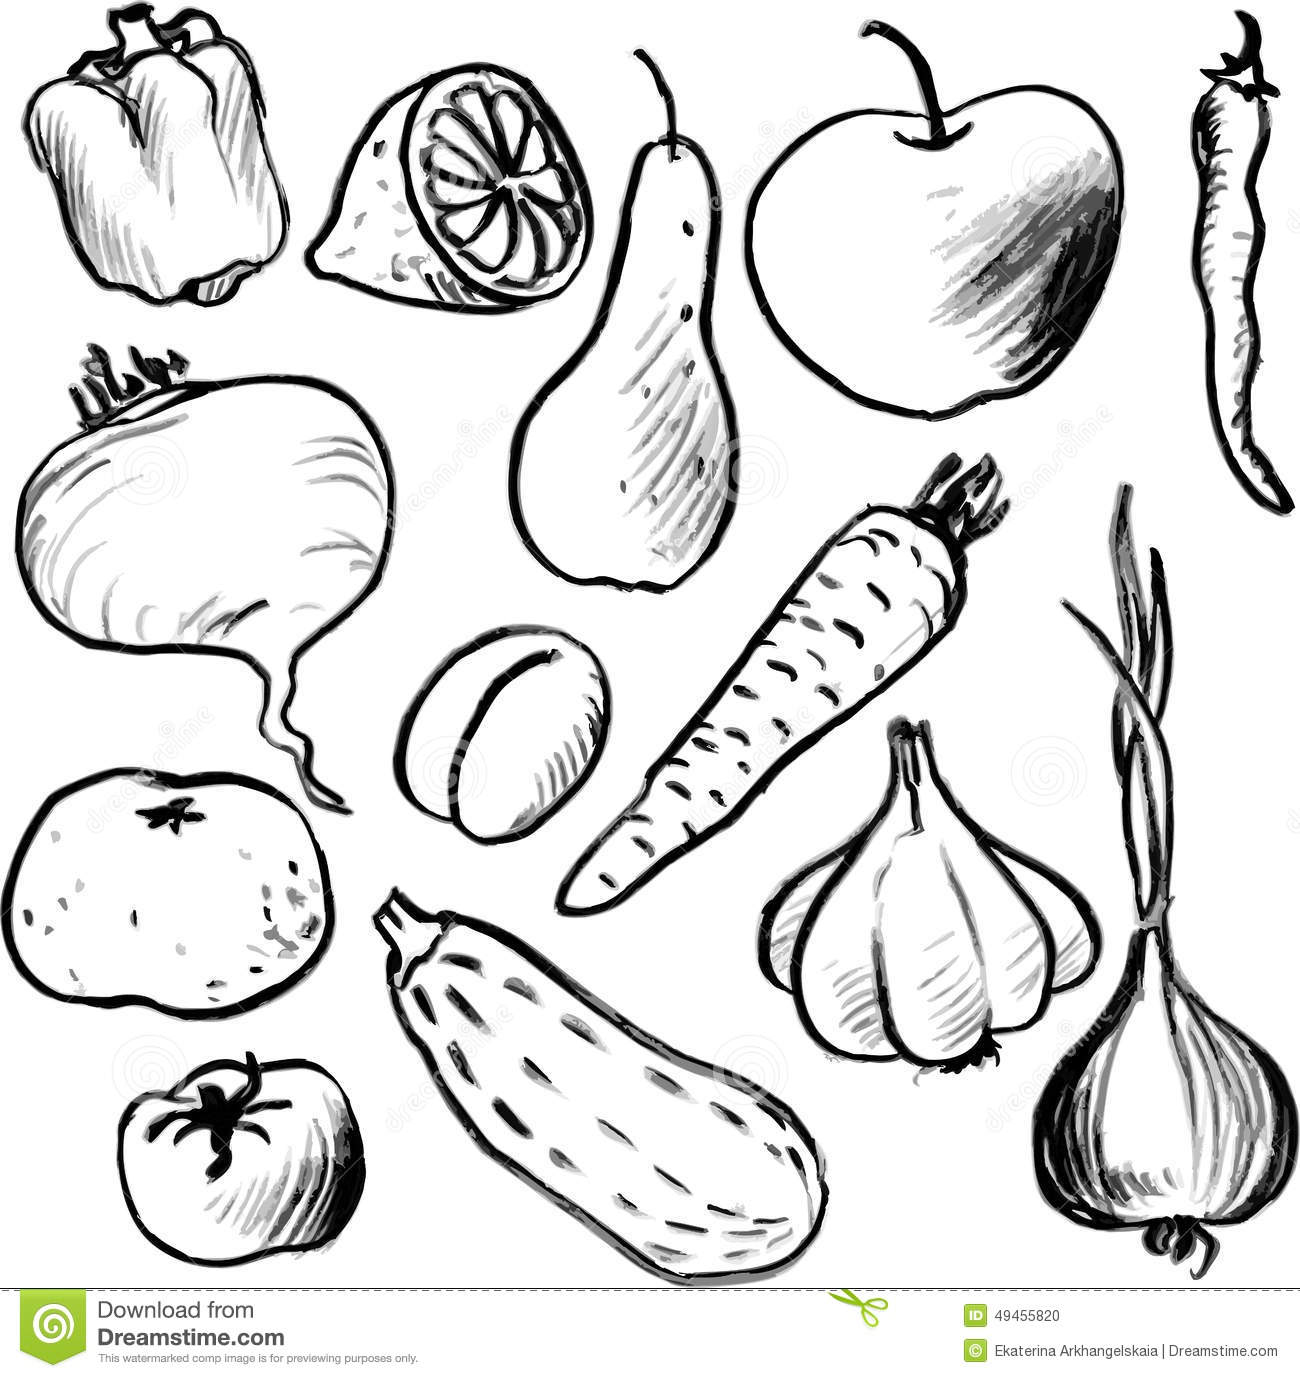 Vegetables and fruits drawing pictures - Dessin de legumes ...